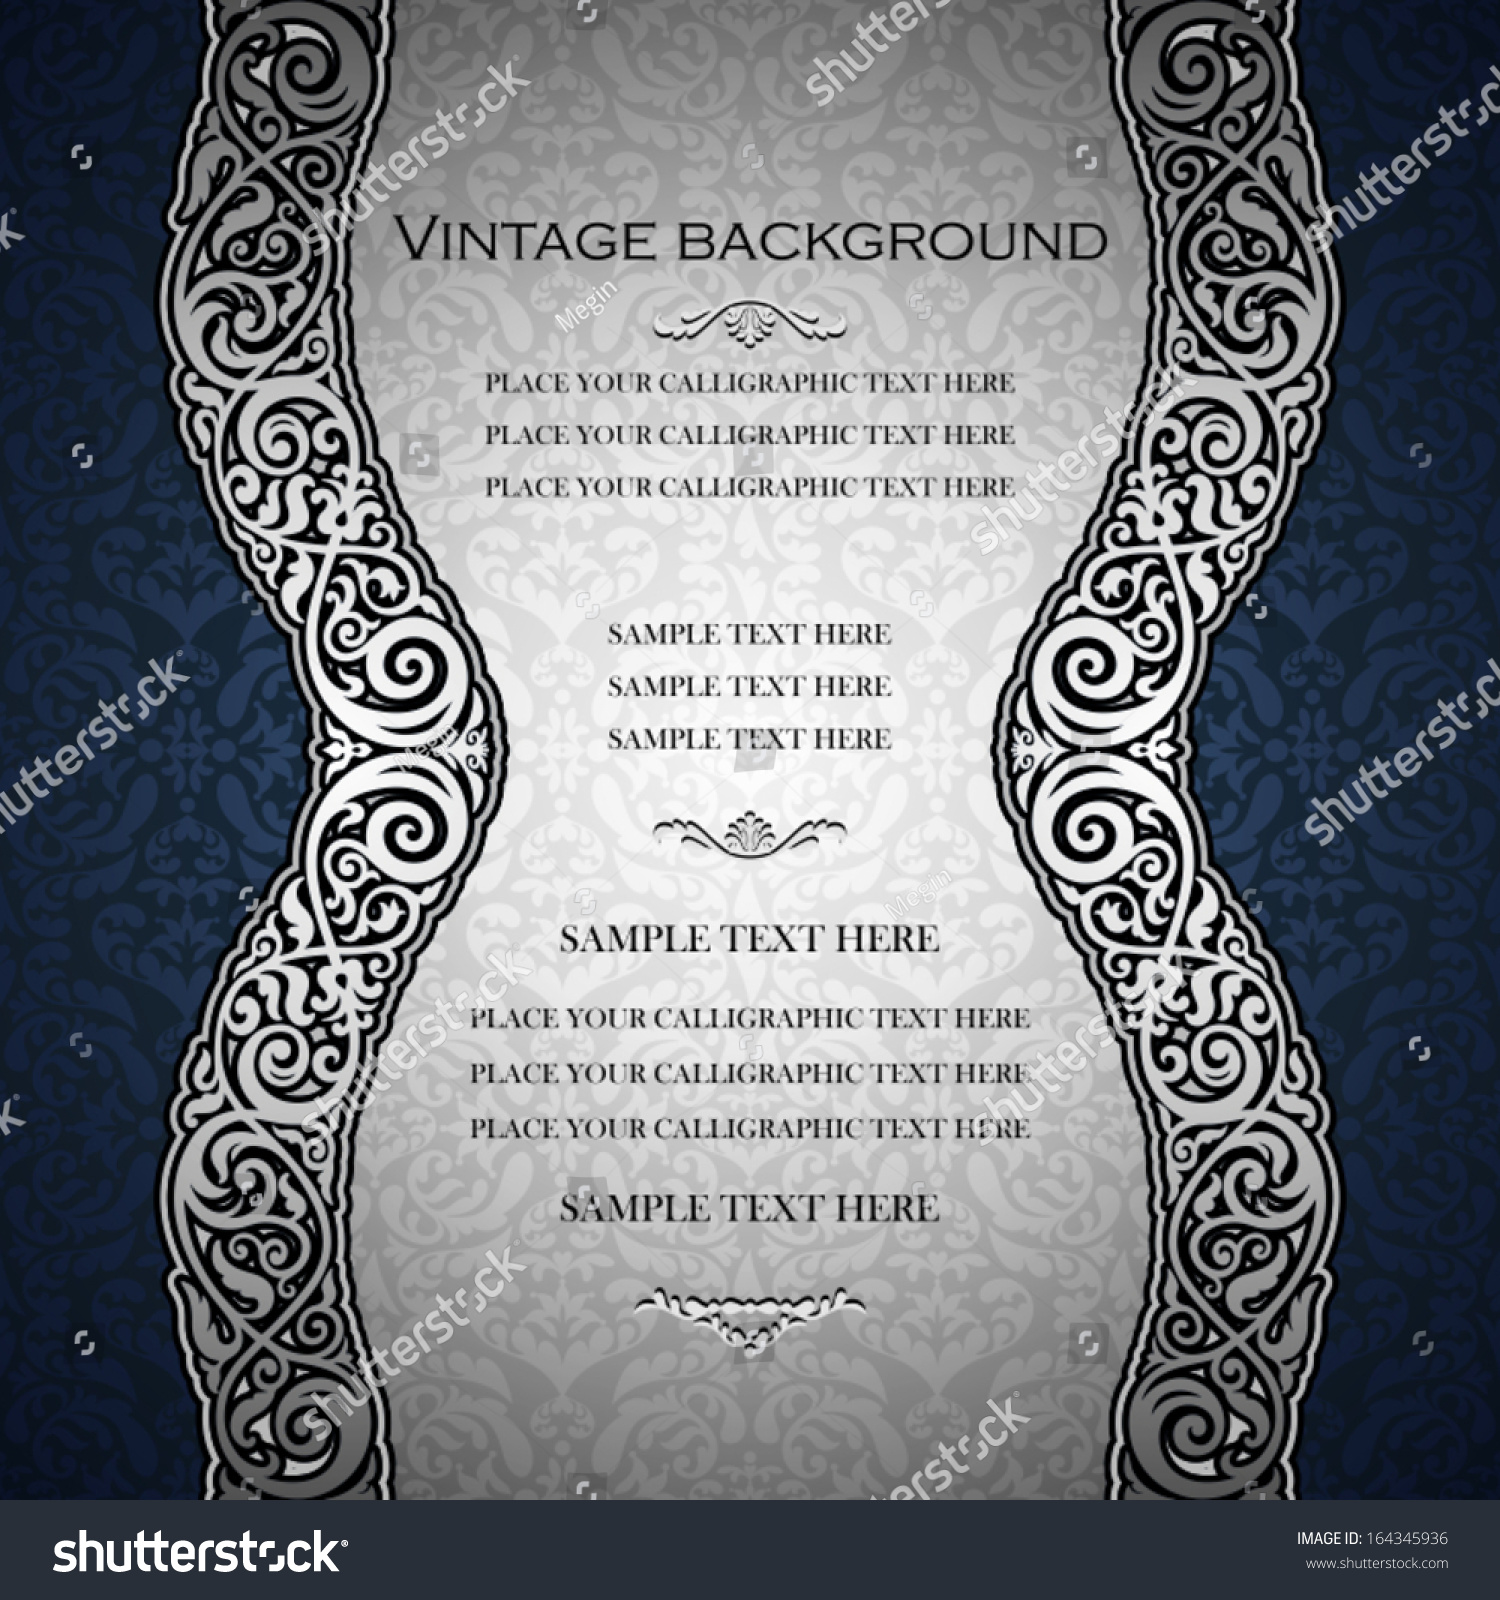 Vintage background ornate baroque pattern vector illustration stock -  Vectors Illustrations Footage Music Vintage Blue Background Antique Victorian Silver Ornament Baroque Frame Beautiful Invitation